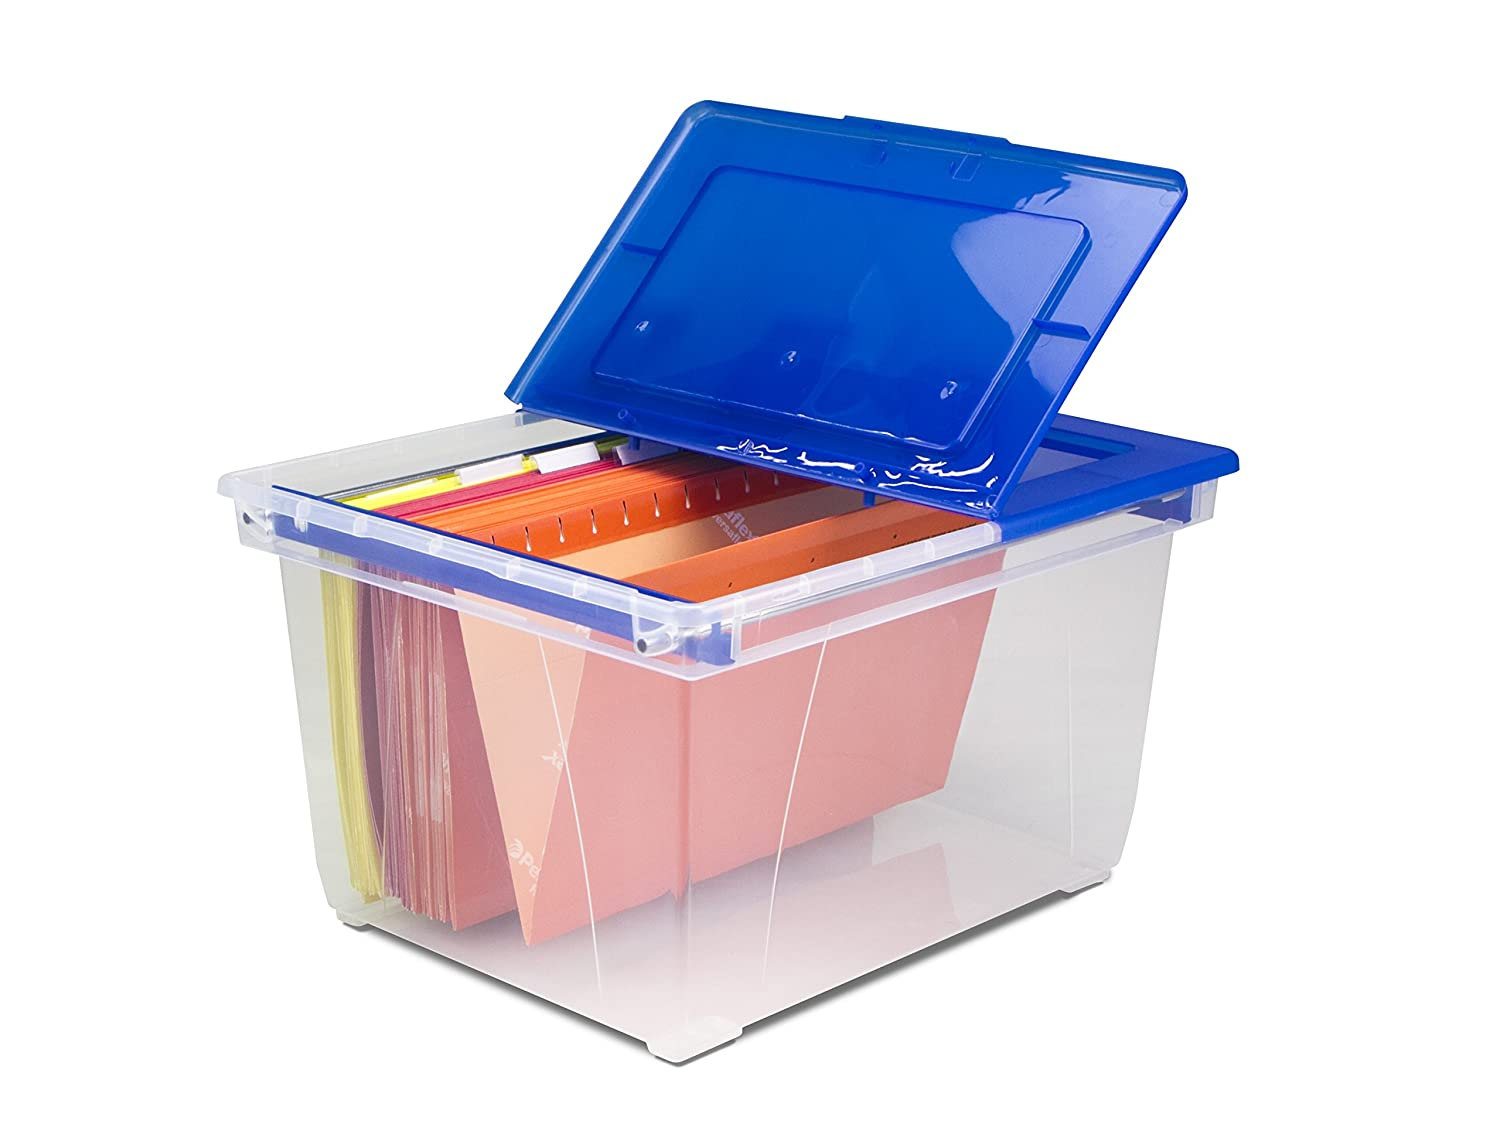 Awesome Amazon.com : Storex Heavy Duty File Tote With Steel Rails, 19.25 X 15.6 X  10.9 Inches, Clear/Blue, 1 Tote (61526B01C) : Office Products